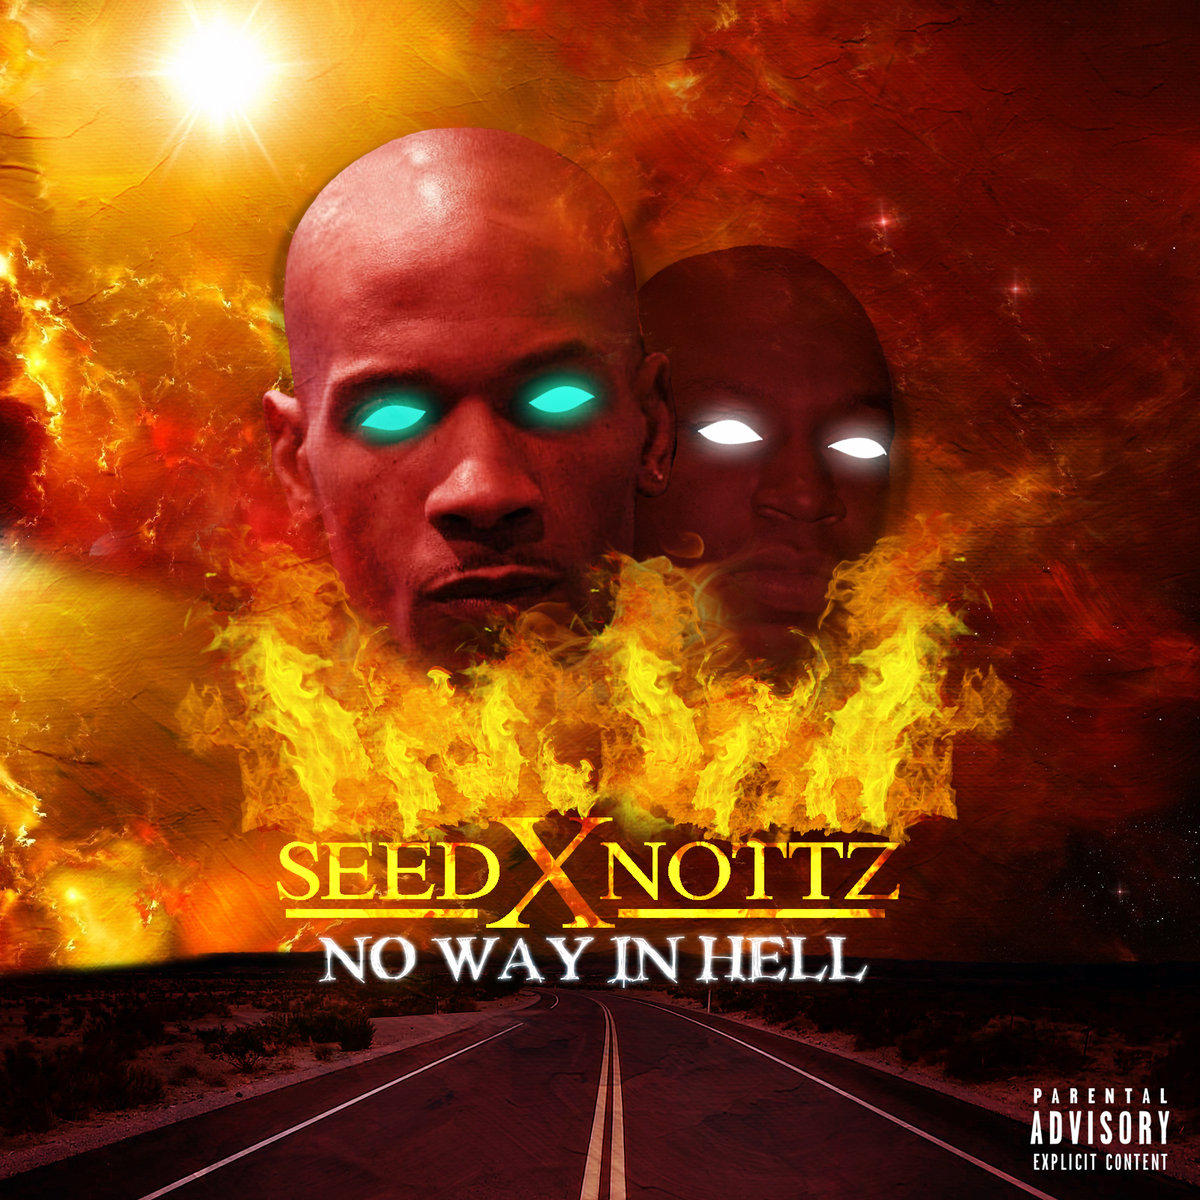 No_way_in_hell